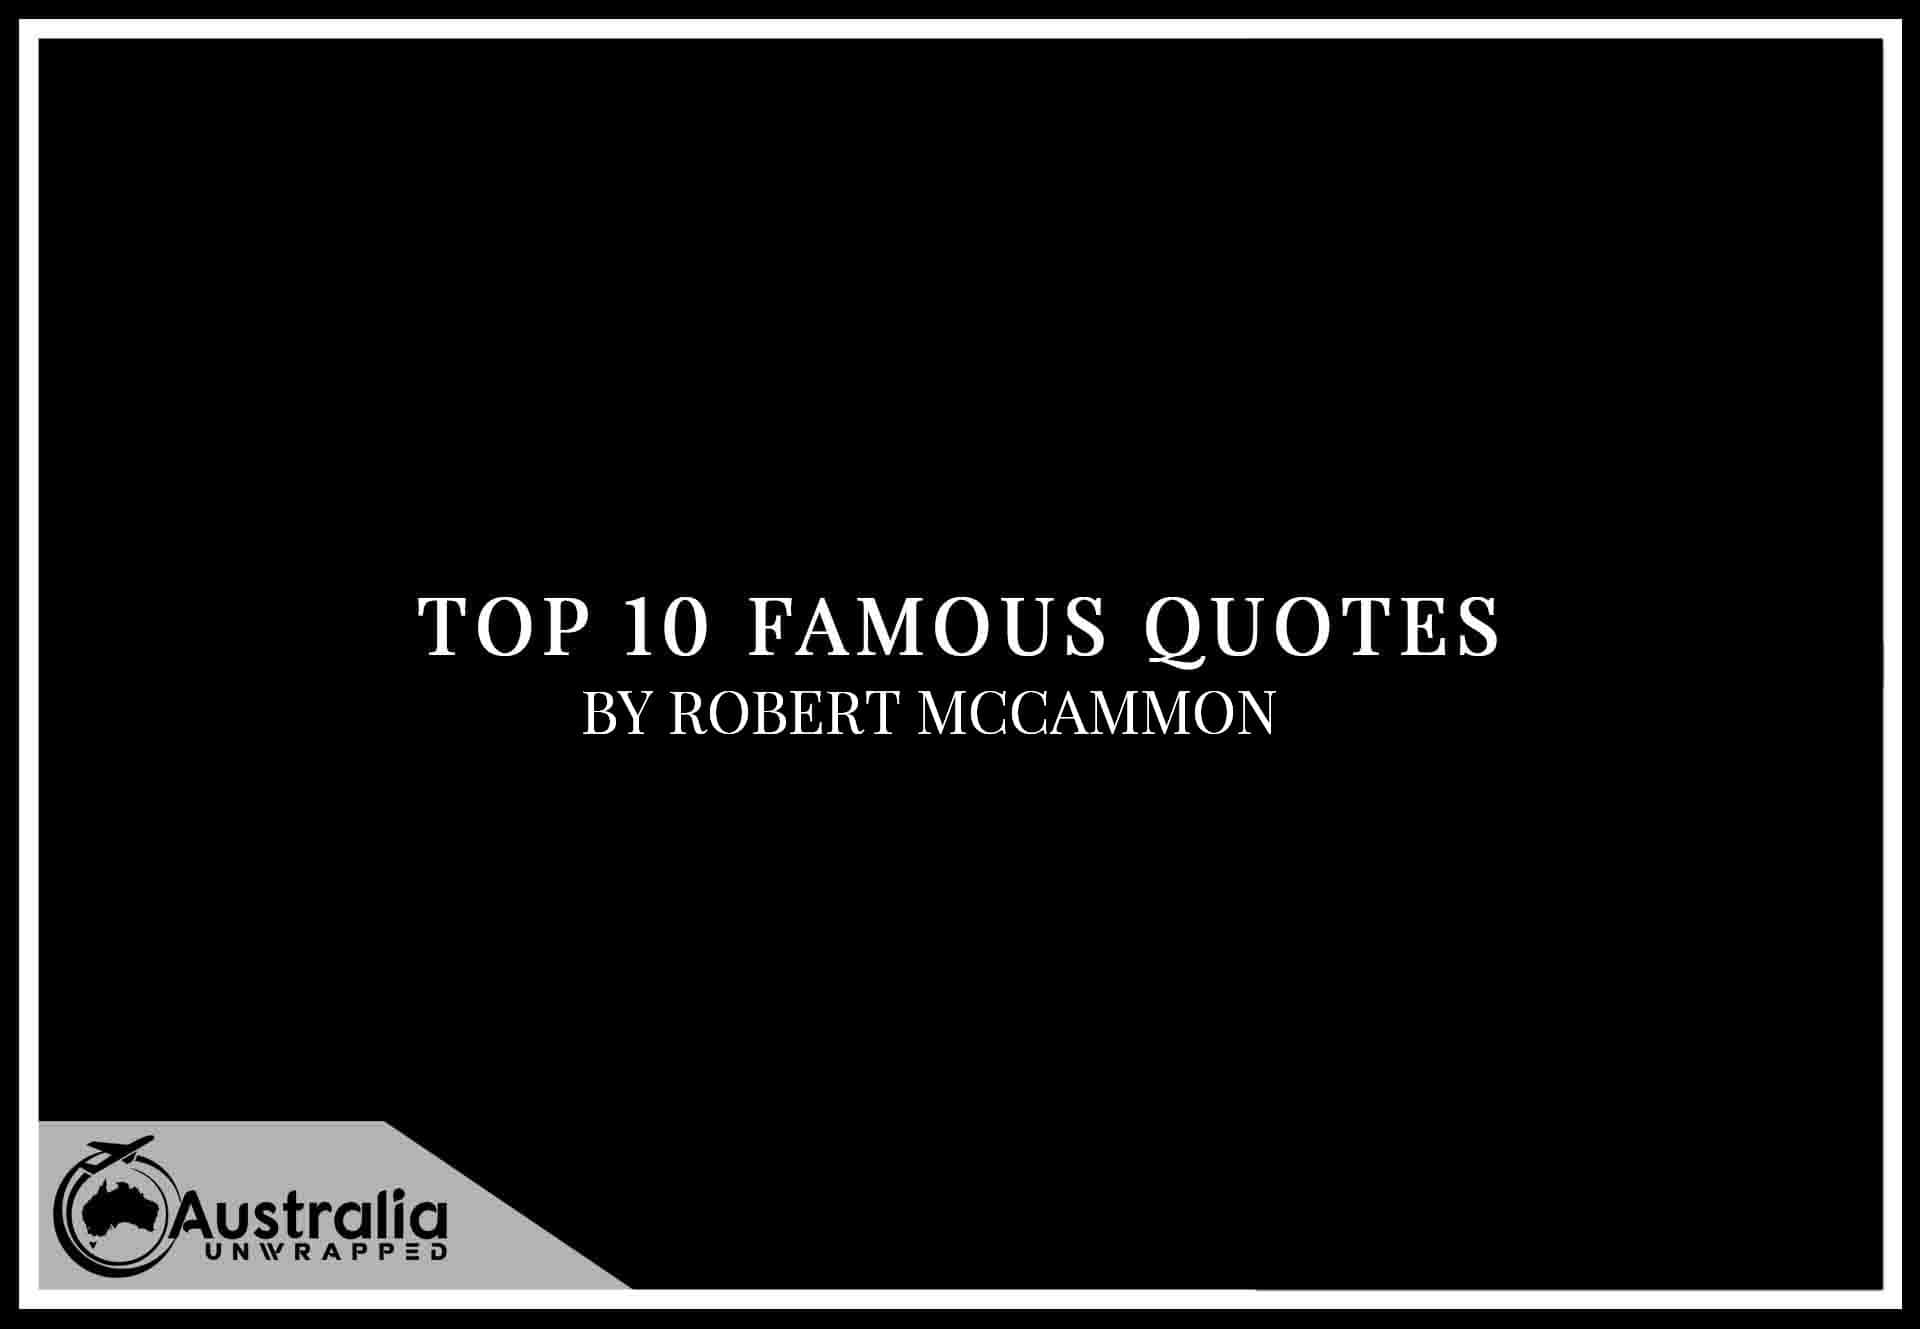 Top 10 Famous Quotes by Author Robert R. McCammon